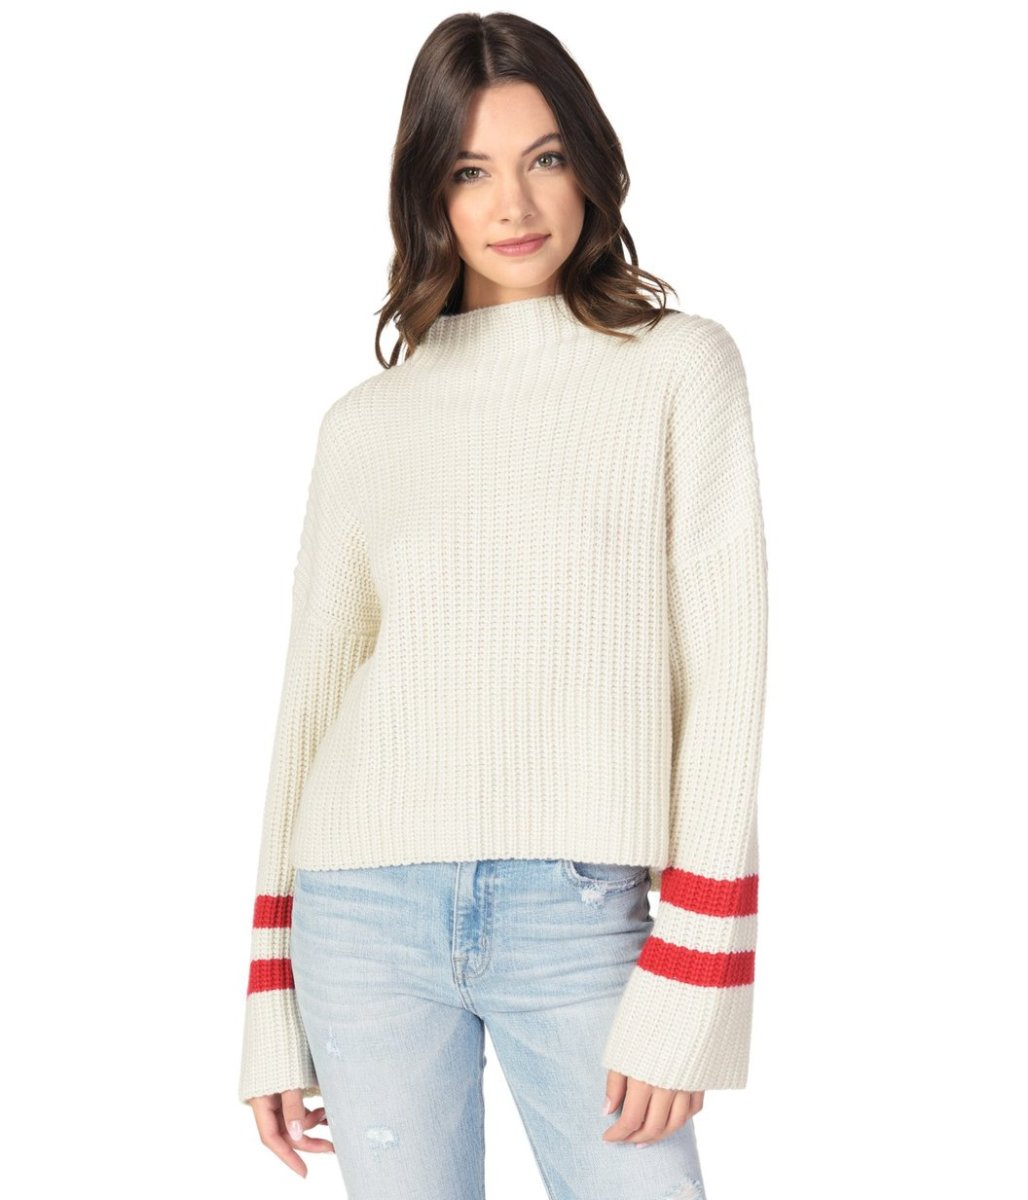 MULBERRY_SWEATER_l_1056x1248